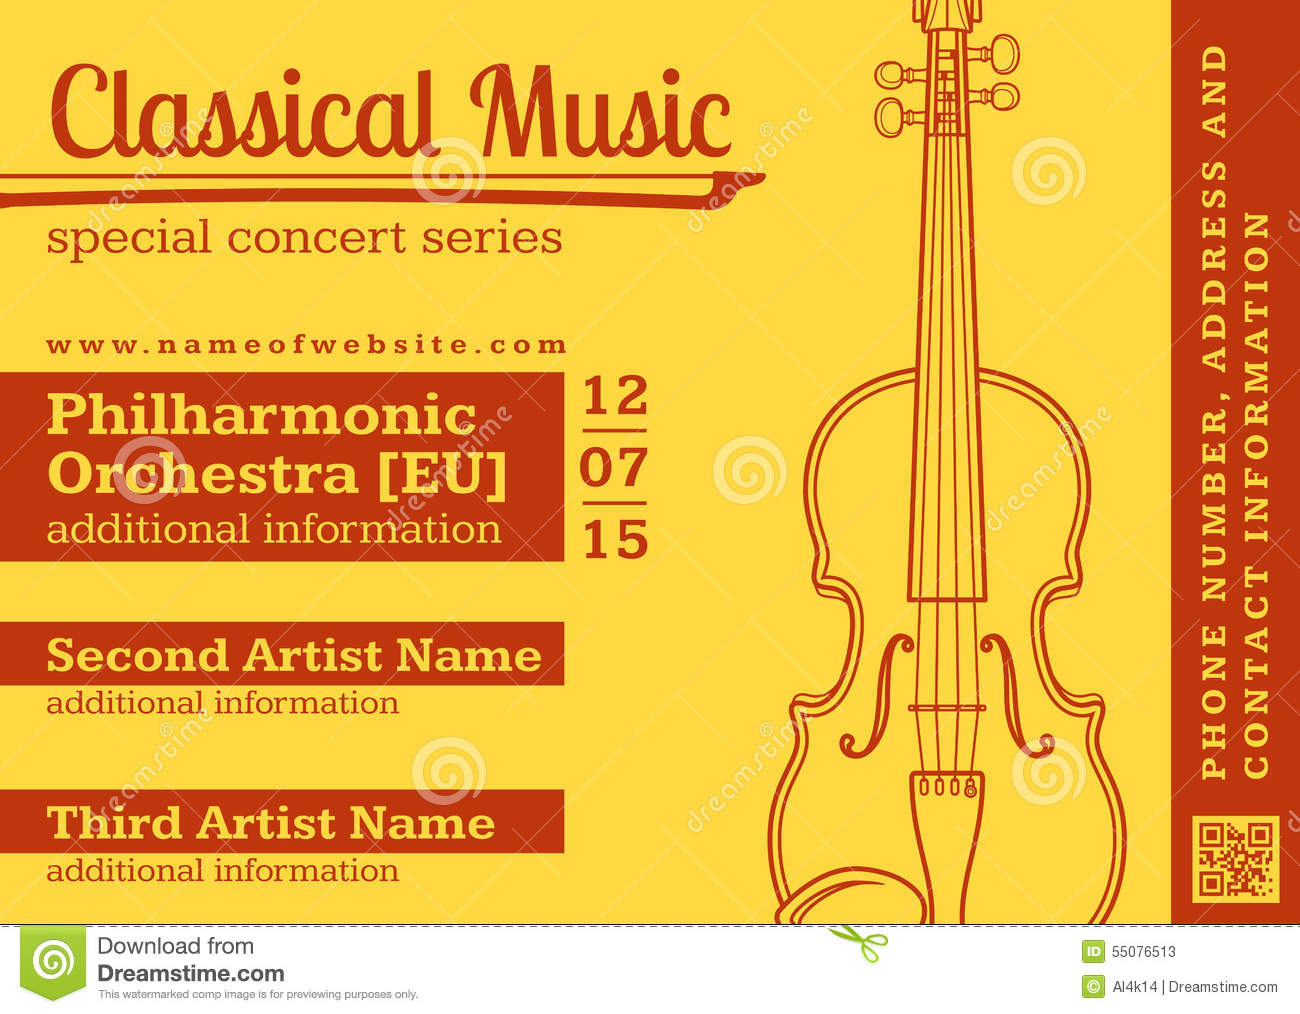 Classical Music Concert Violin Horizontal Music Flyer Template Stock Vector - Image: 55076513